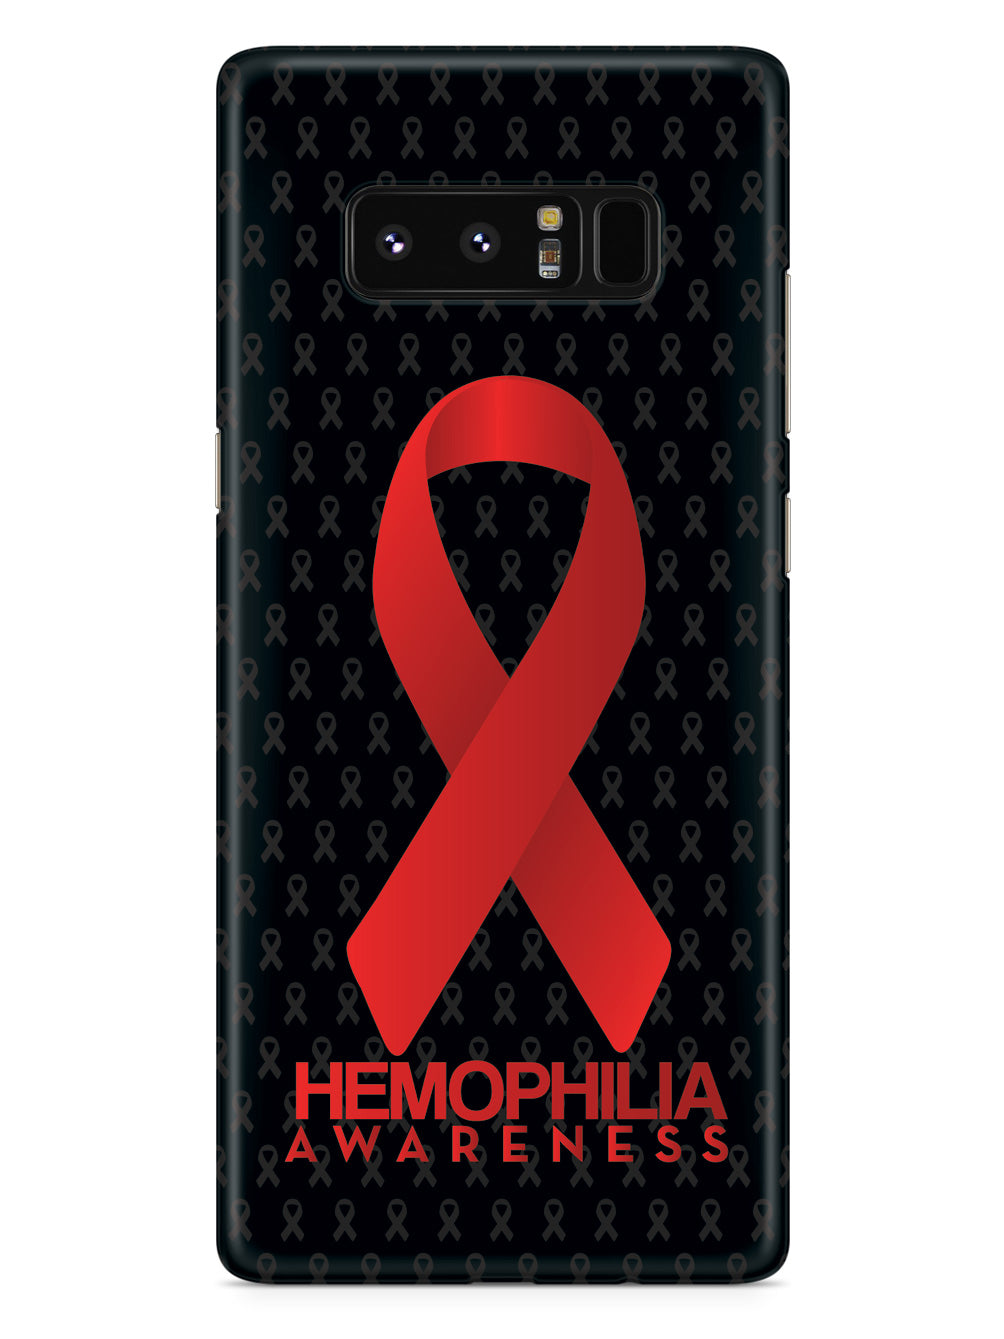 Hemophilia - Awareness Ribbon - Black Case